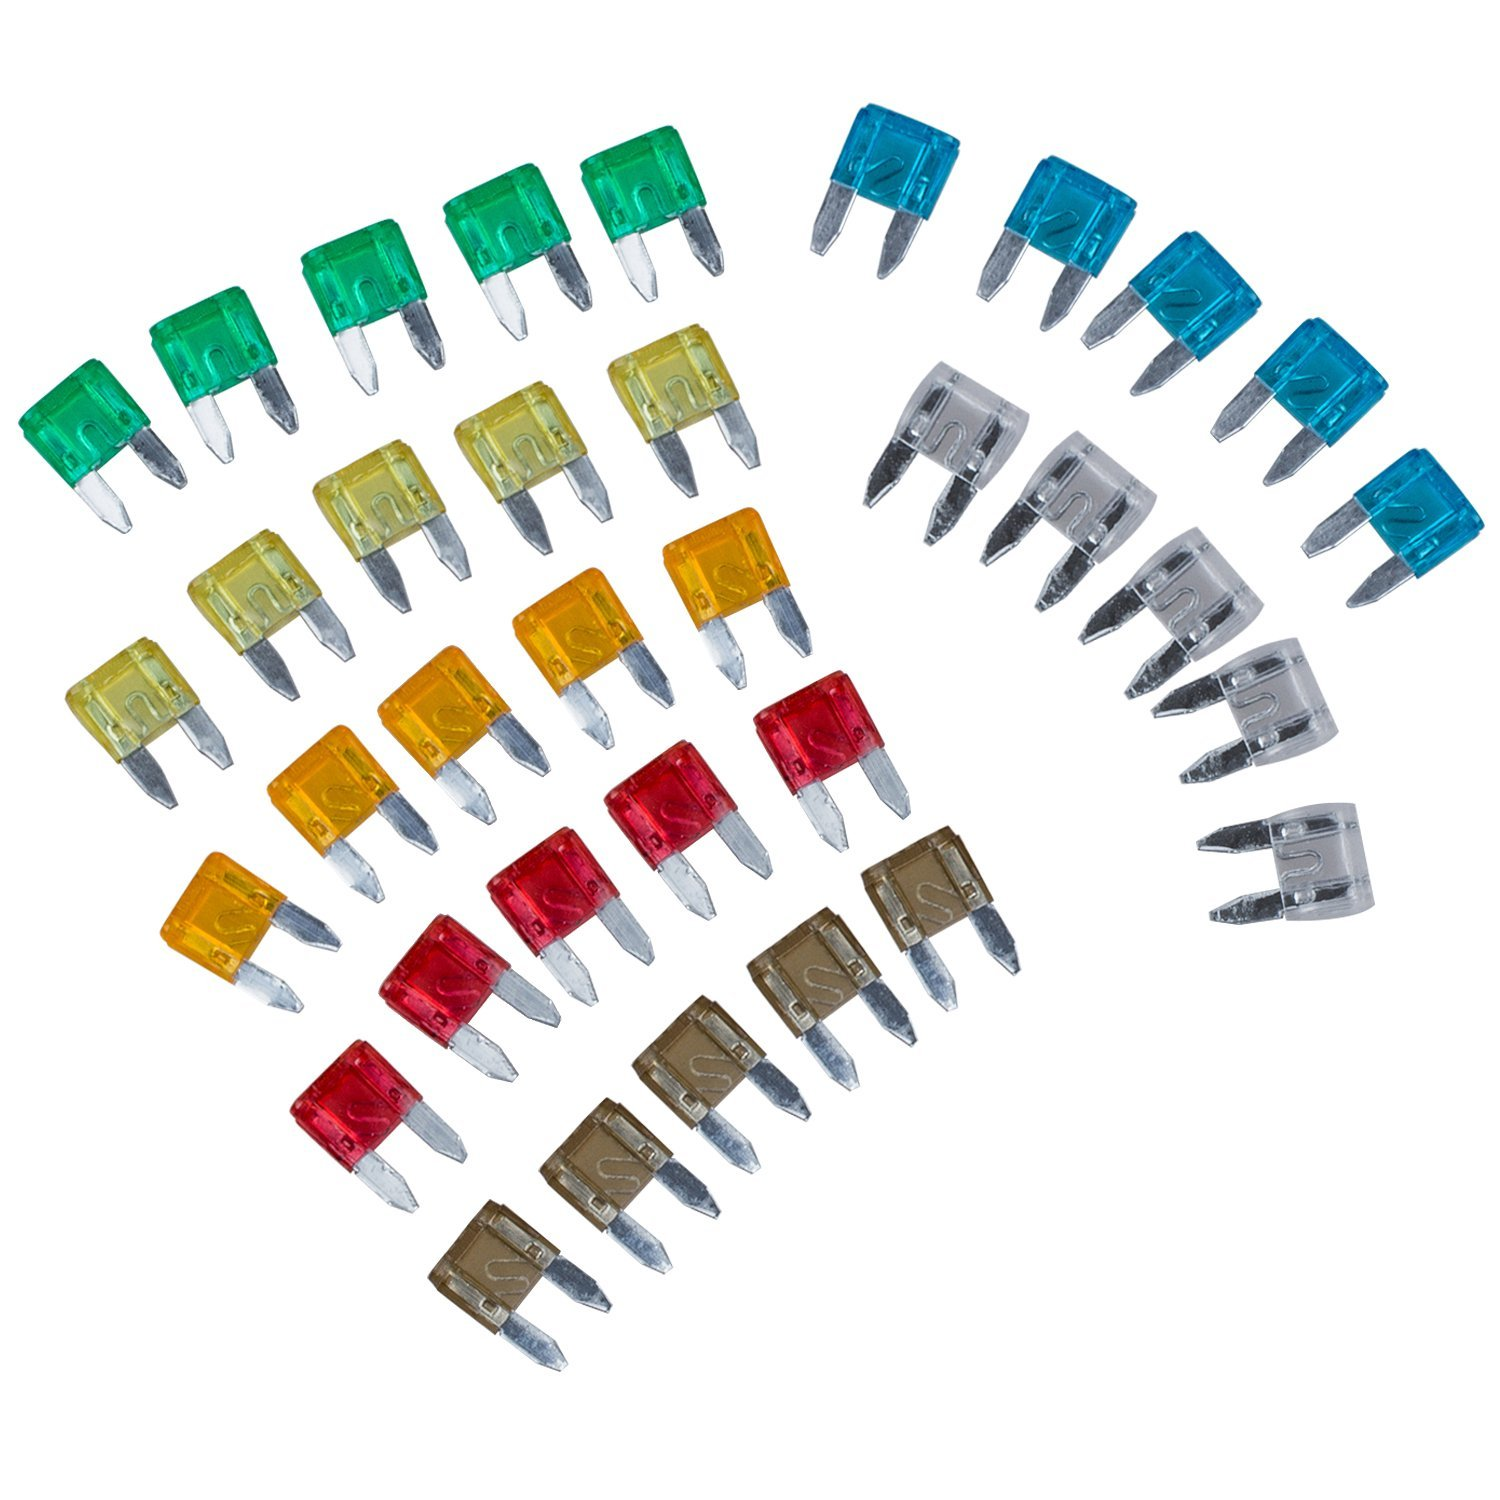 SODIAL(R) 14536 35 Piece Mixed Mini Blade Fuse Auto Car Motorbike